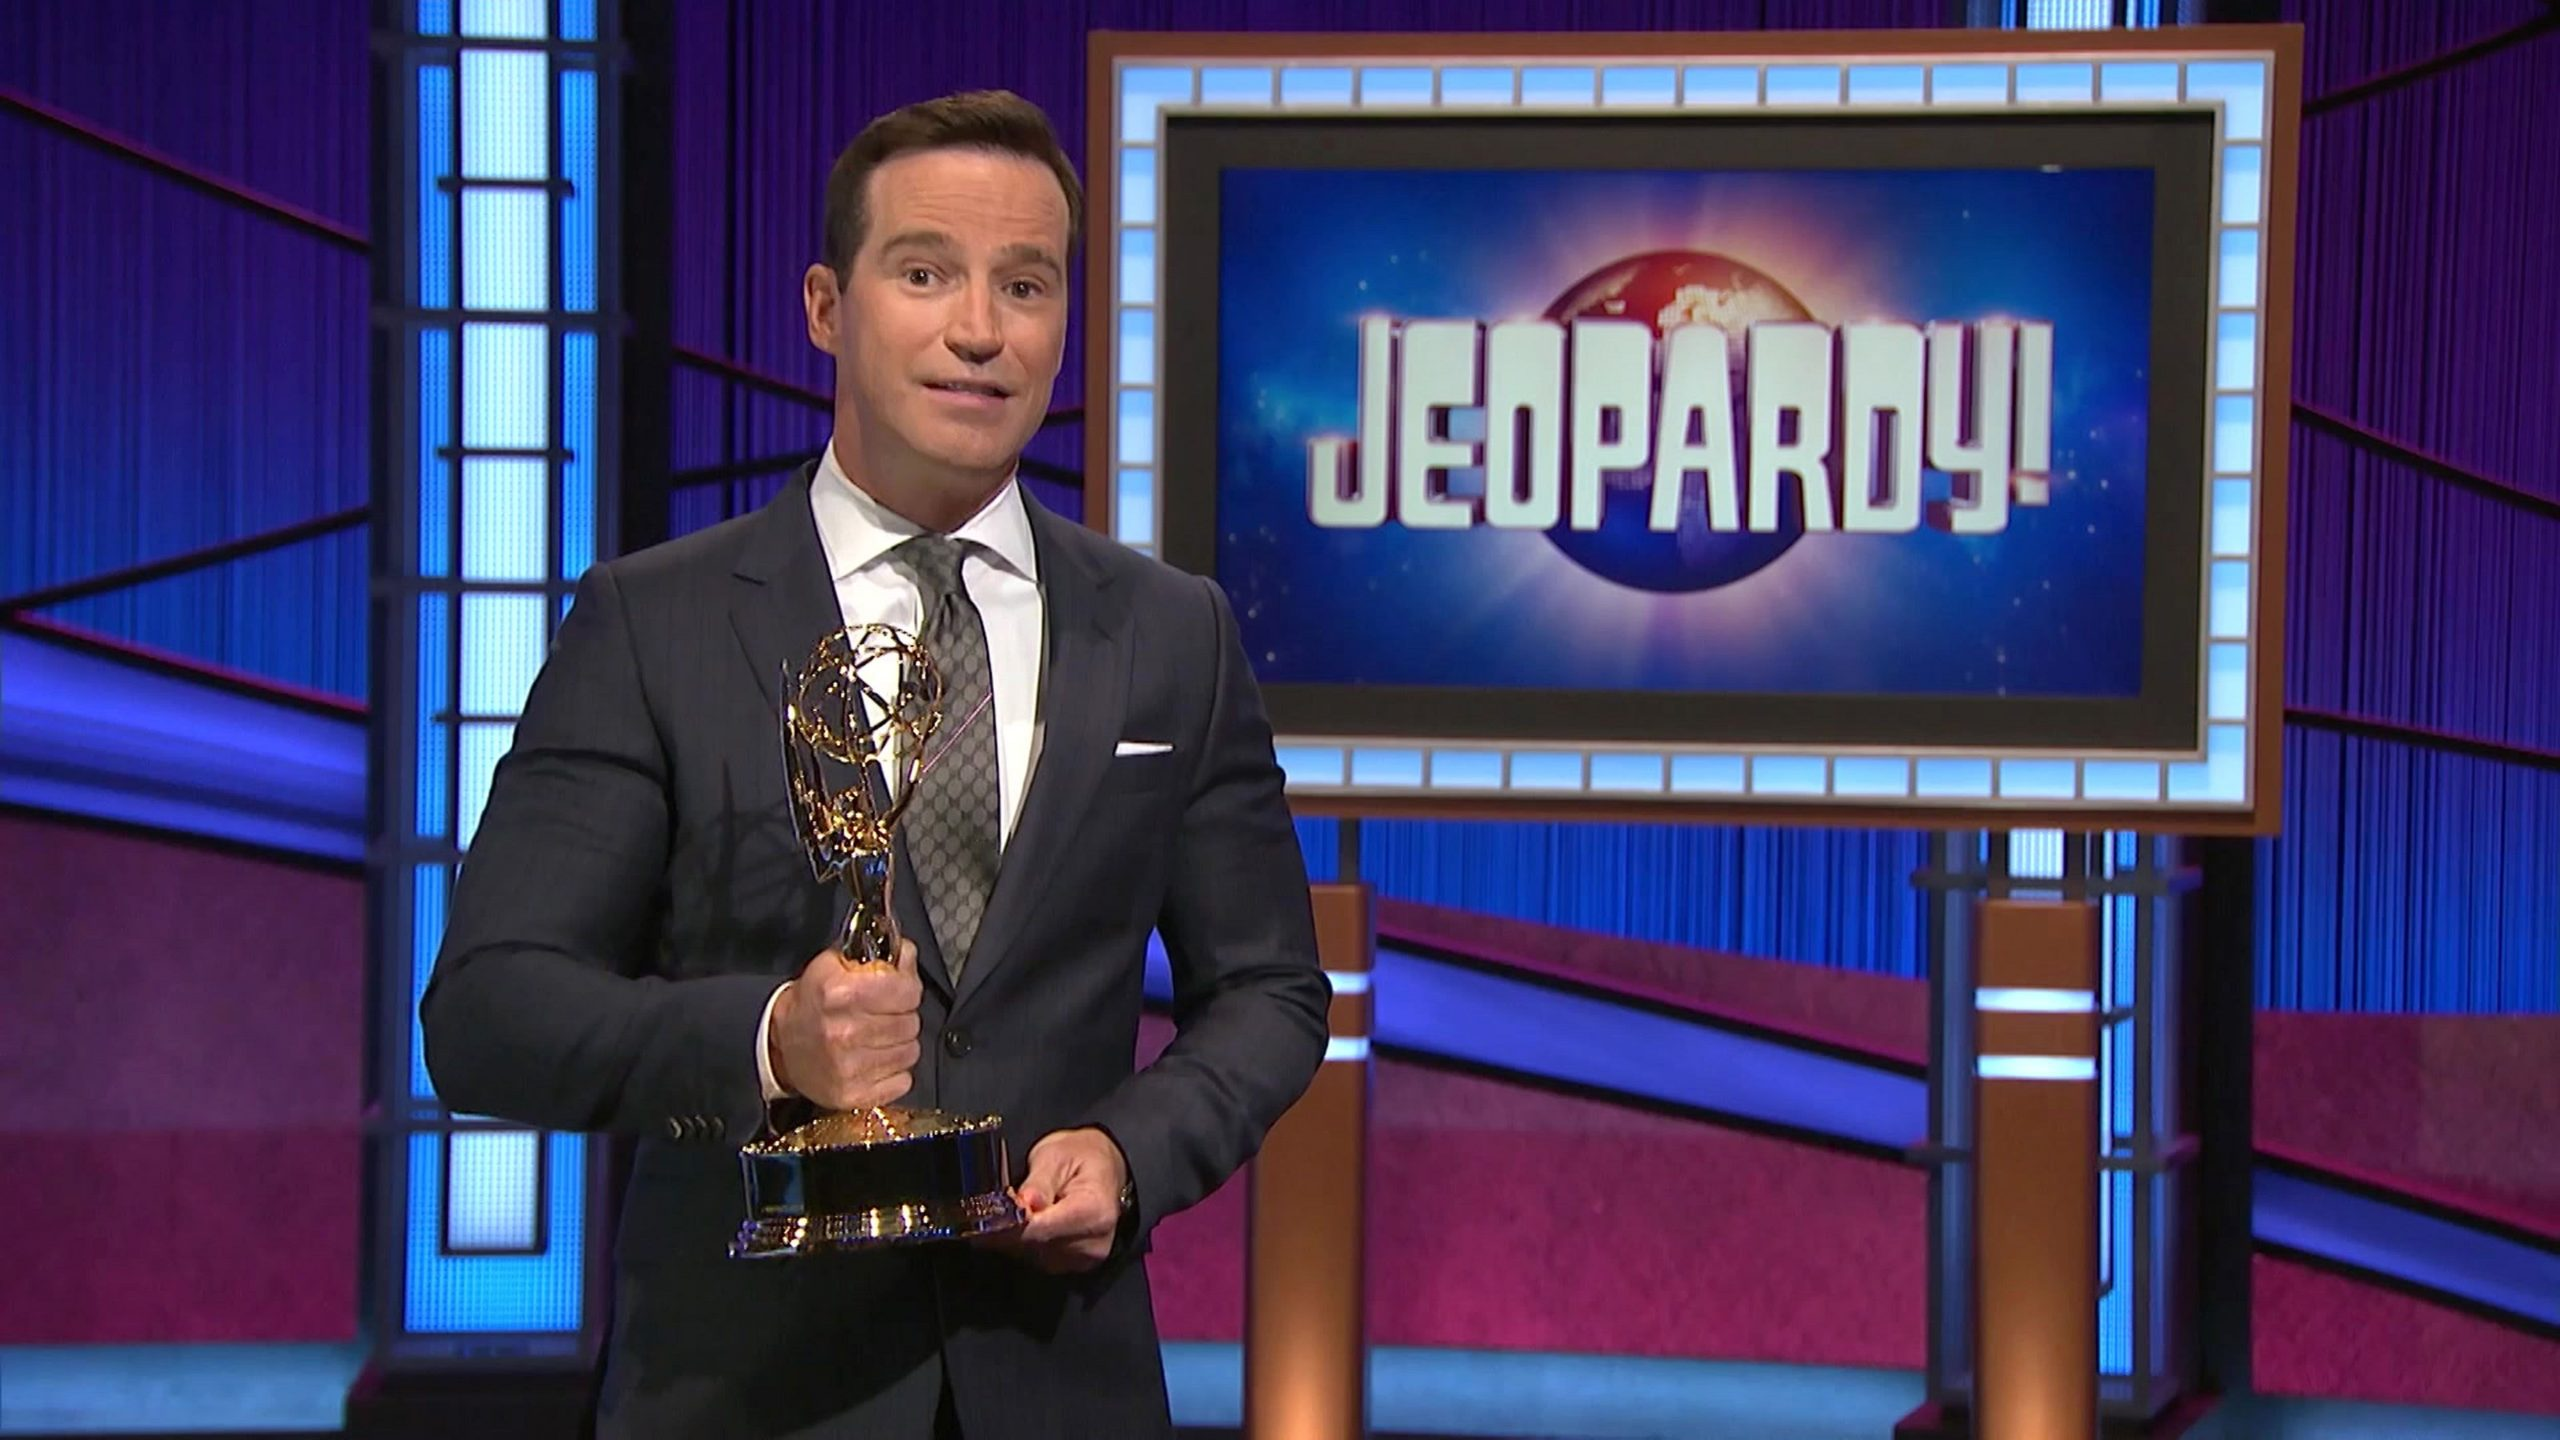 'Jeopardy!' executive producer Mike Richards will leave the show, Sony says, amid lingering controversy